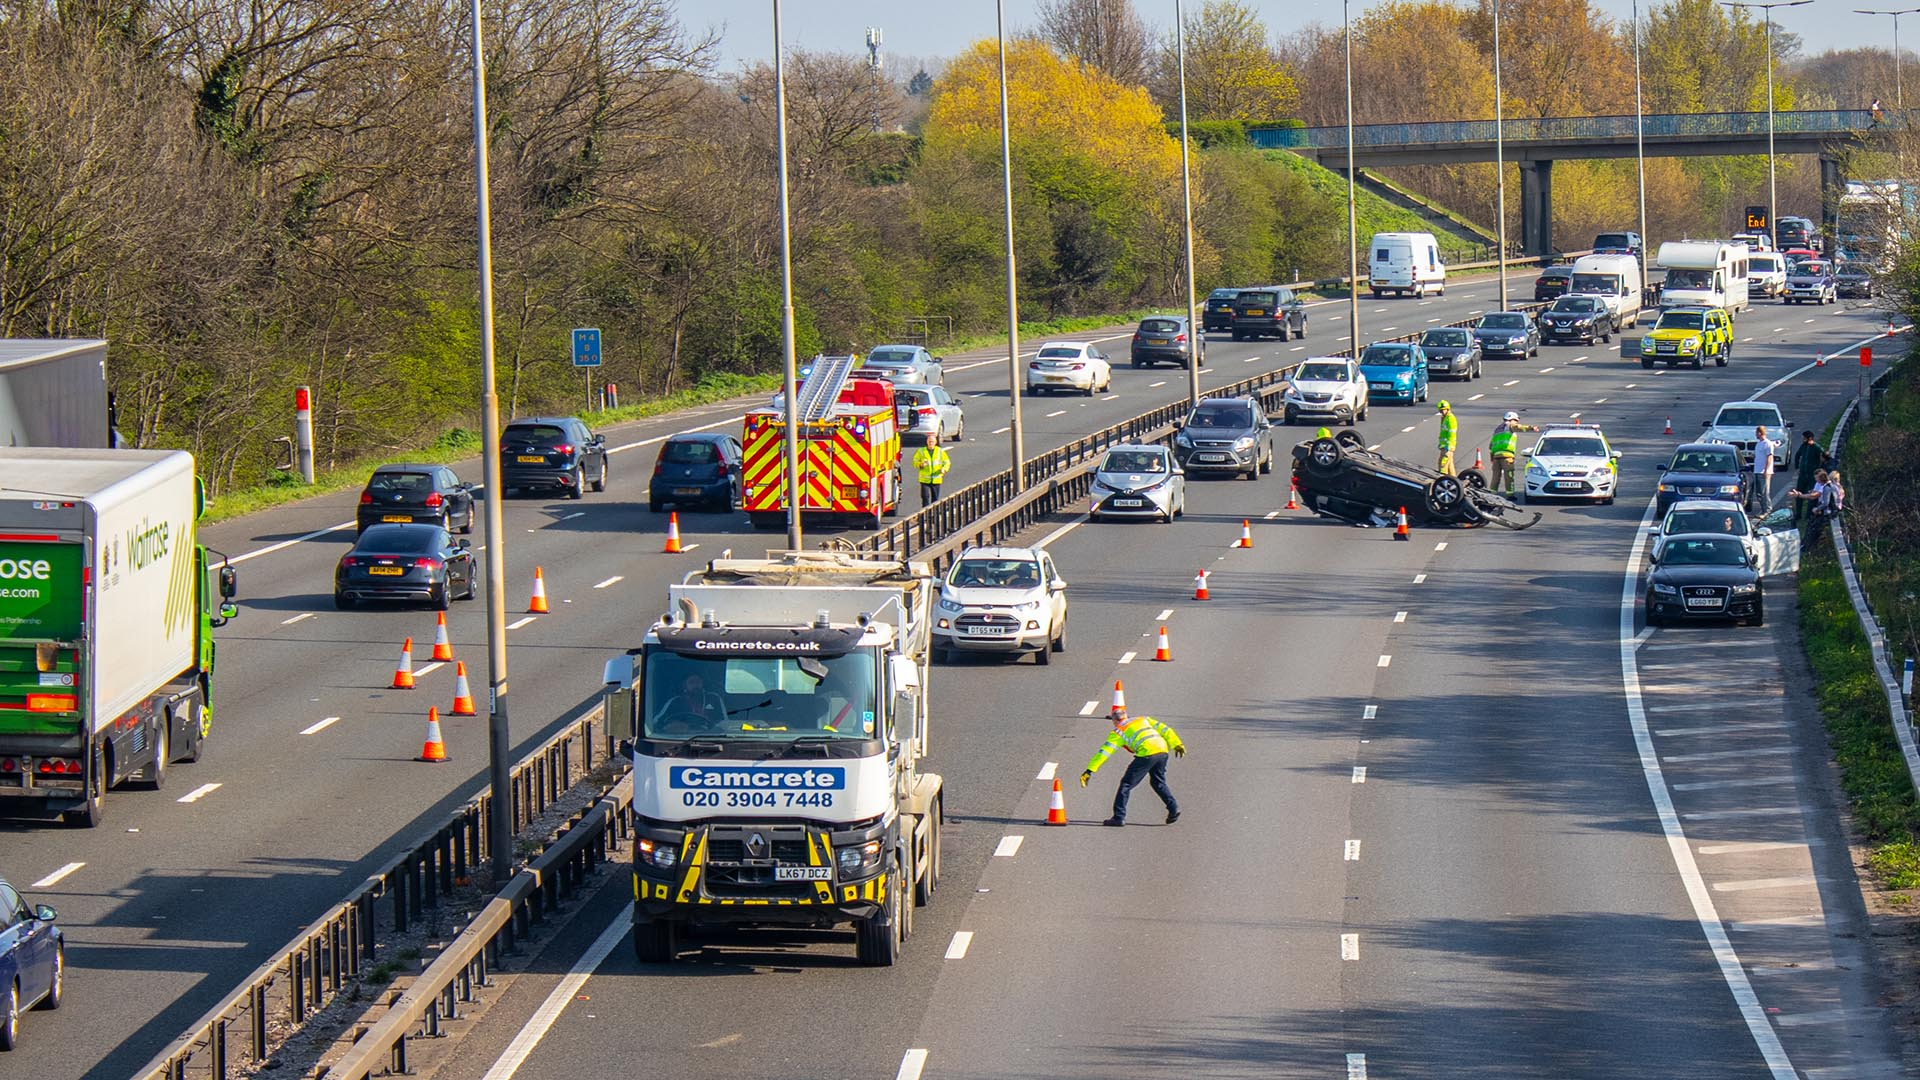 Accident on M25 motorway